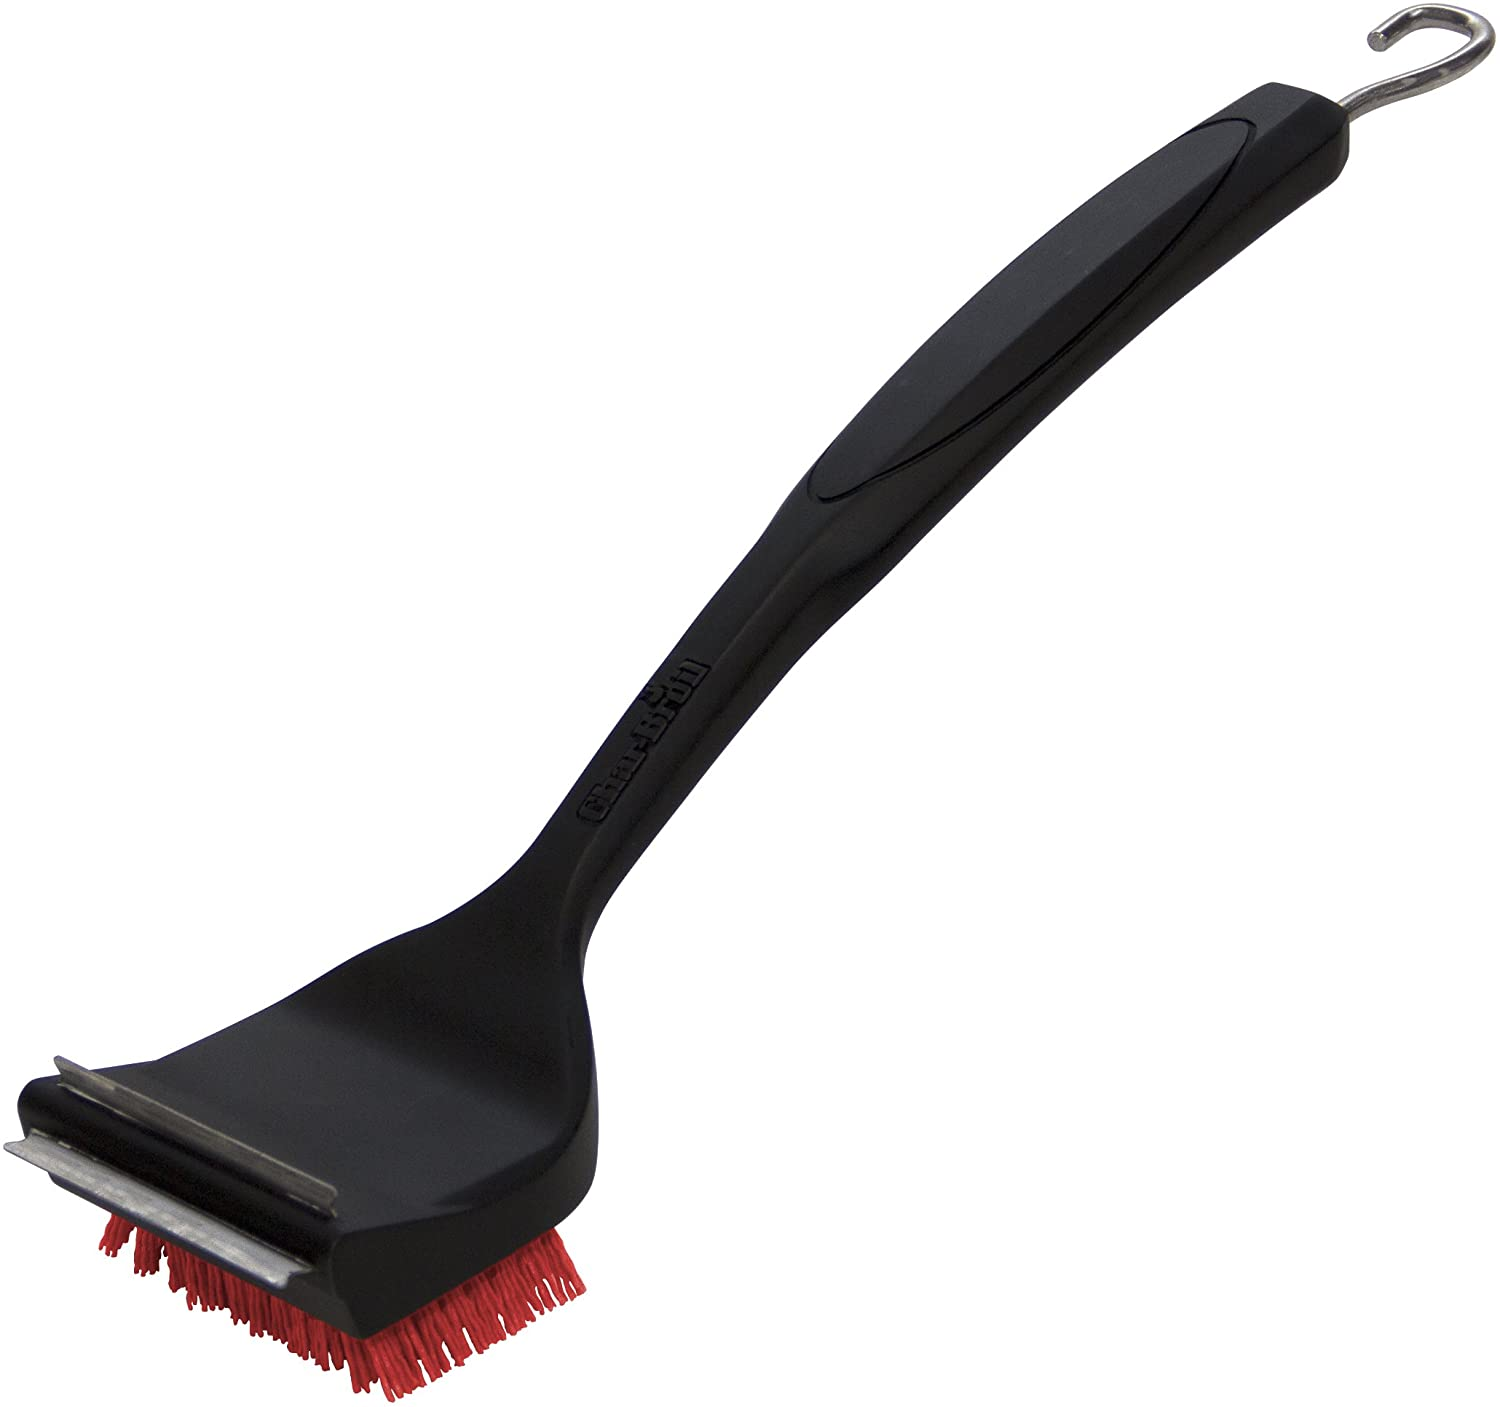 Char-Broil 8666894 SAFER Replaceable Head Nylon Bristle Grill Brush